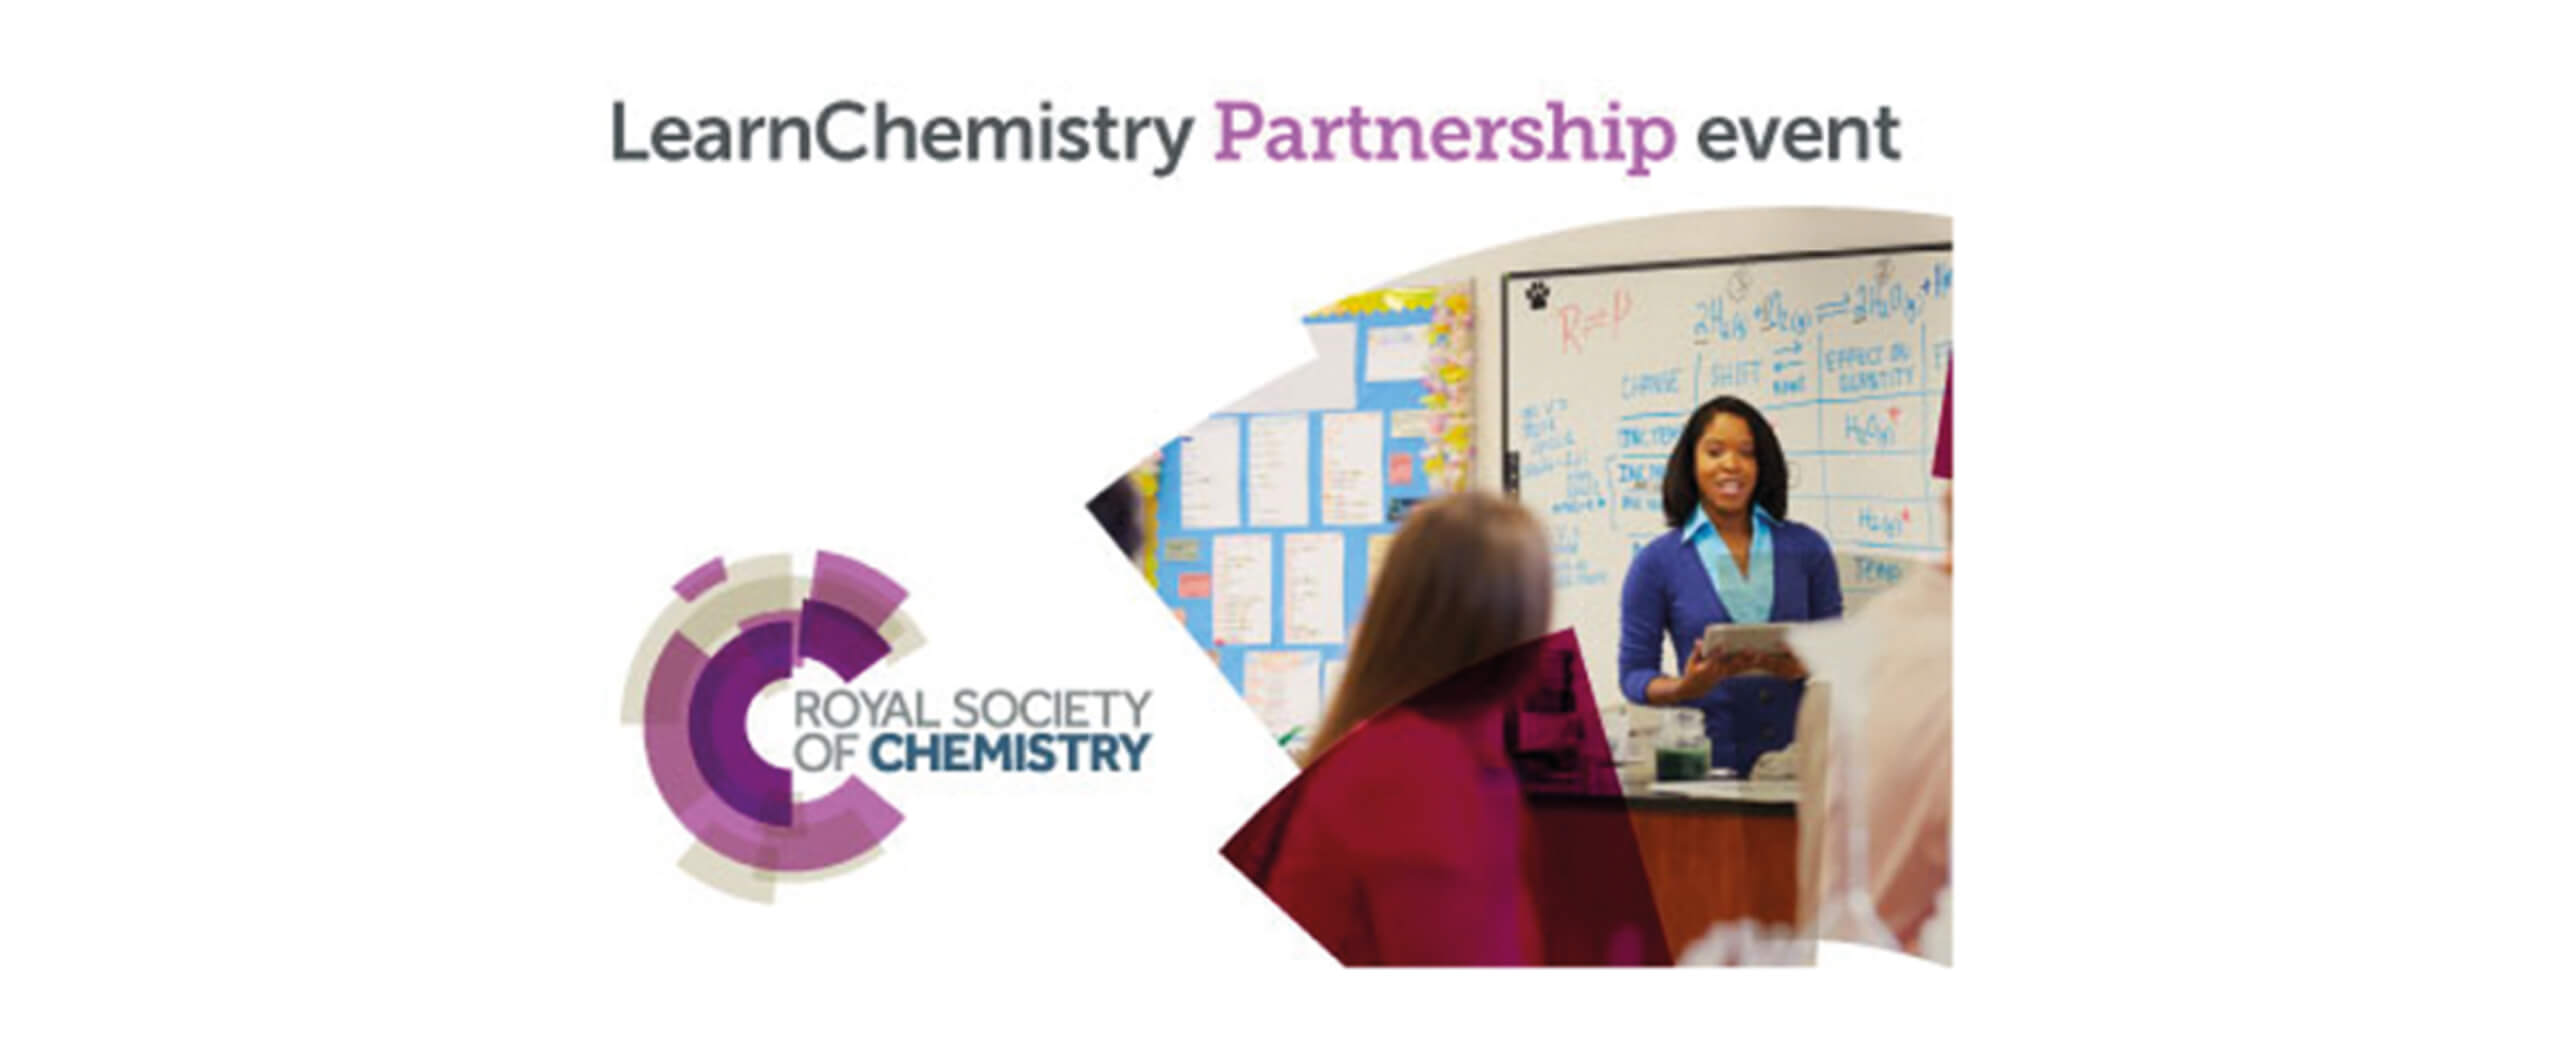 Working with the Royal Society of Chemistry